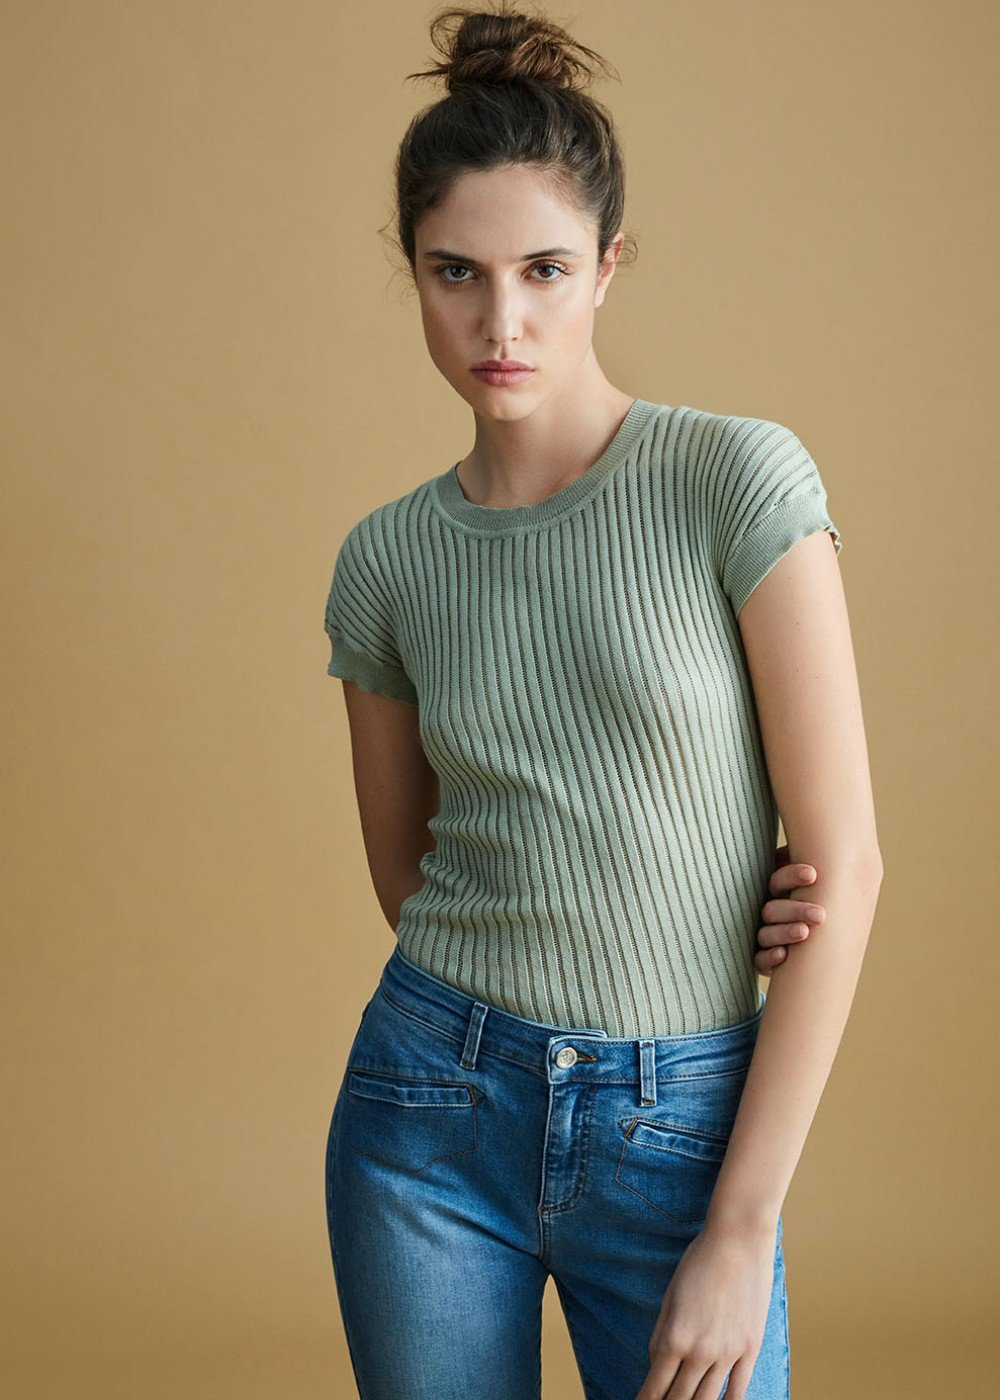 Seraphine t-shirt with tone-on-tone stripes - Mentolo - Woman